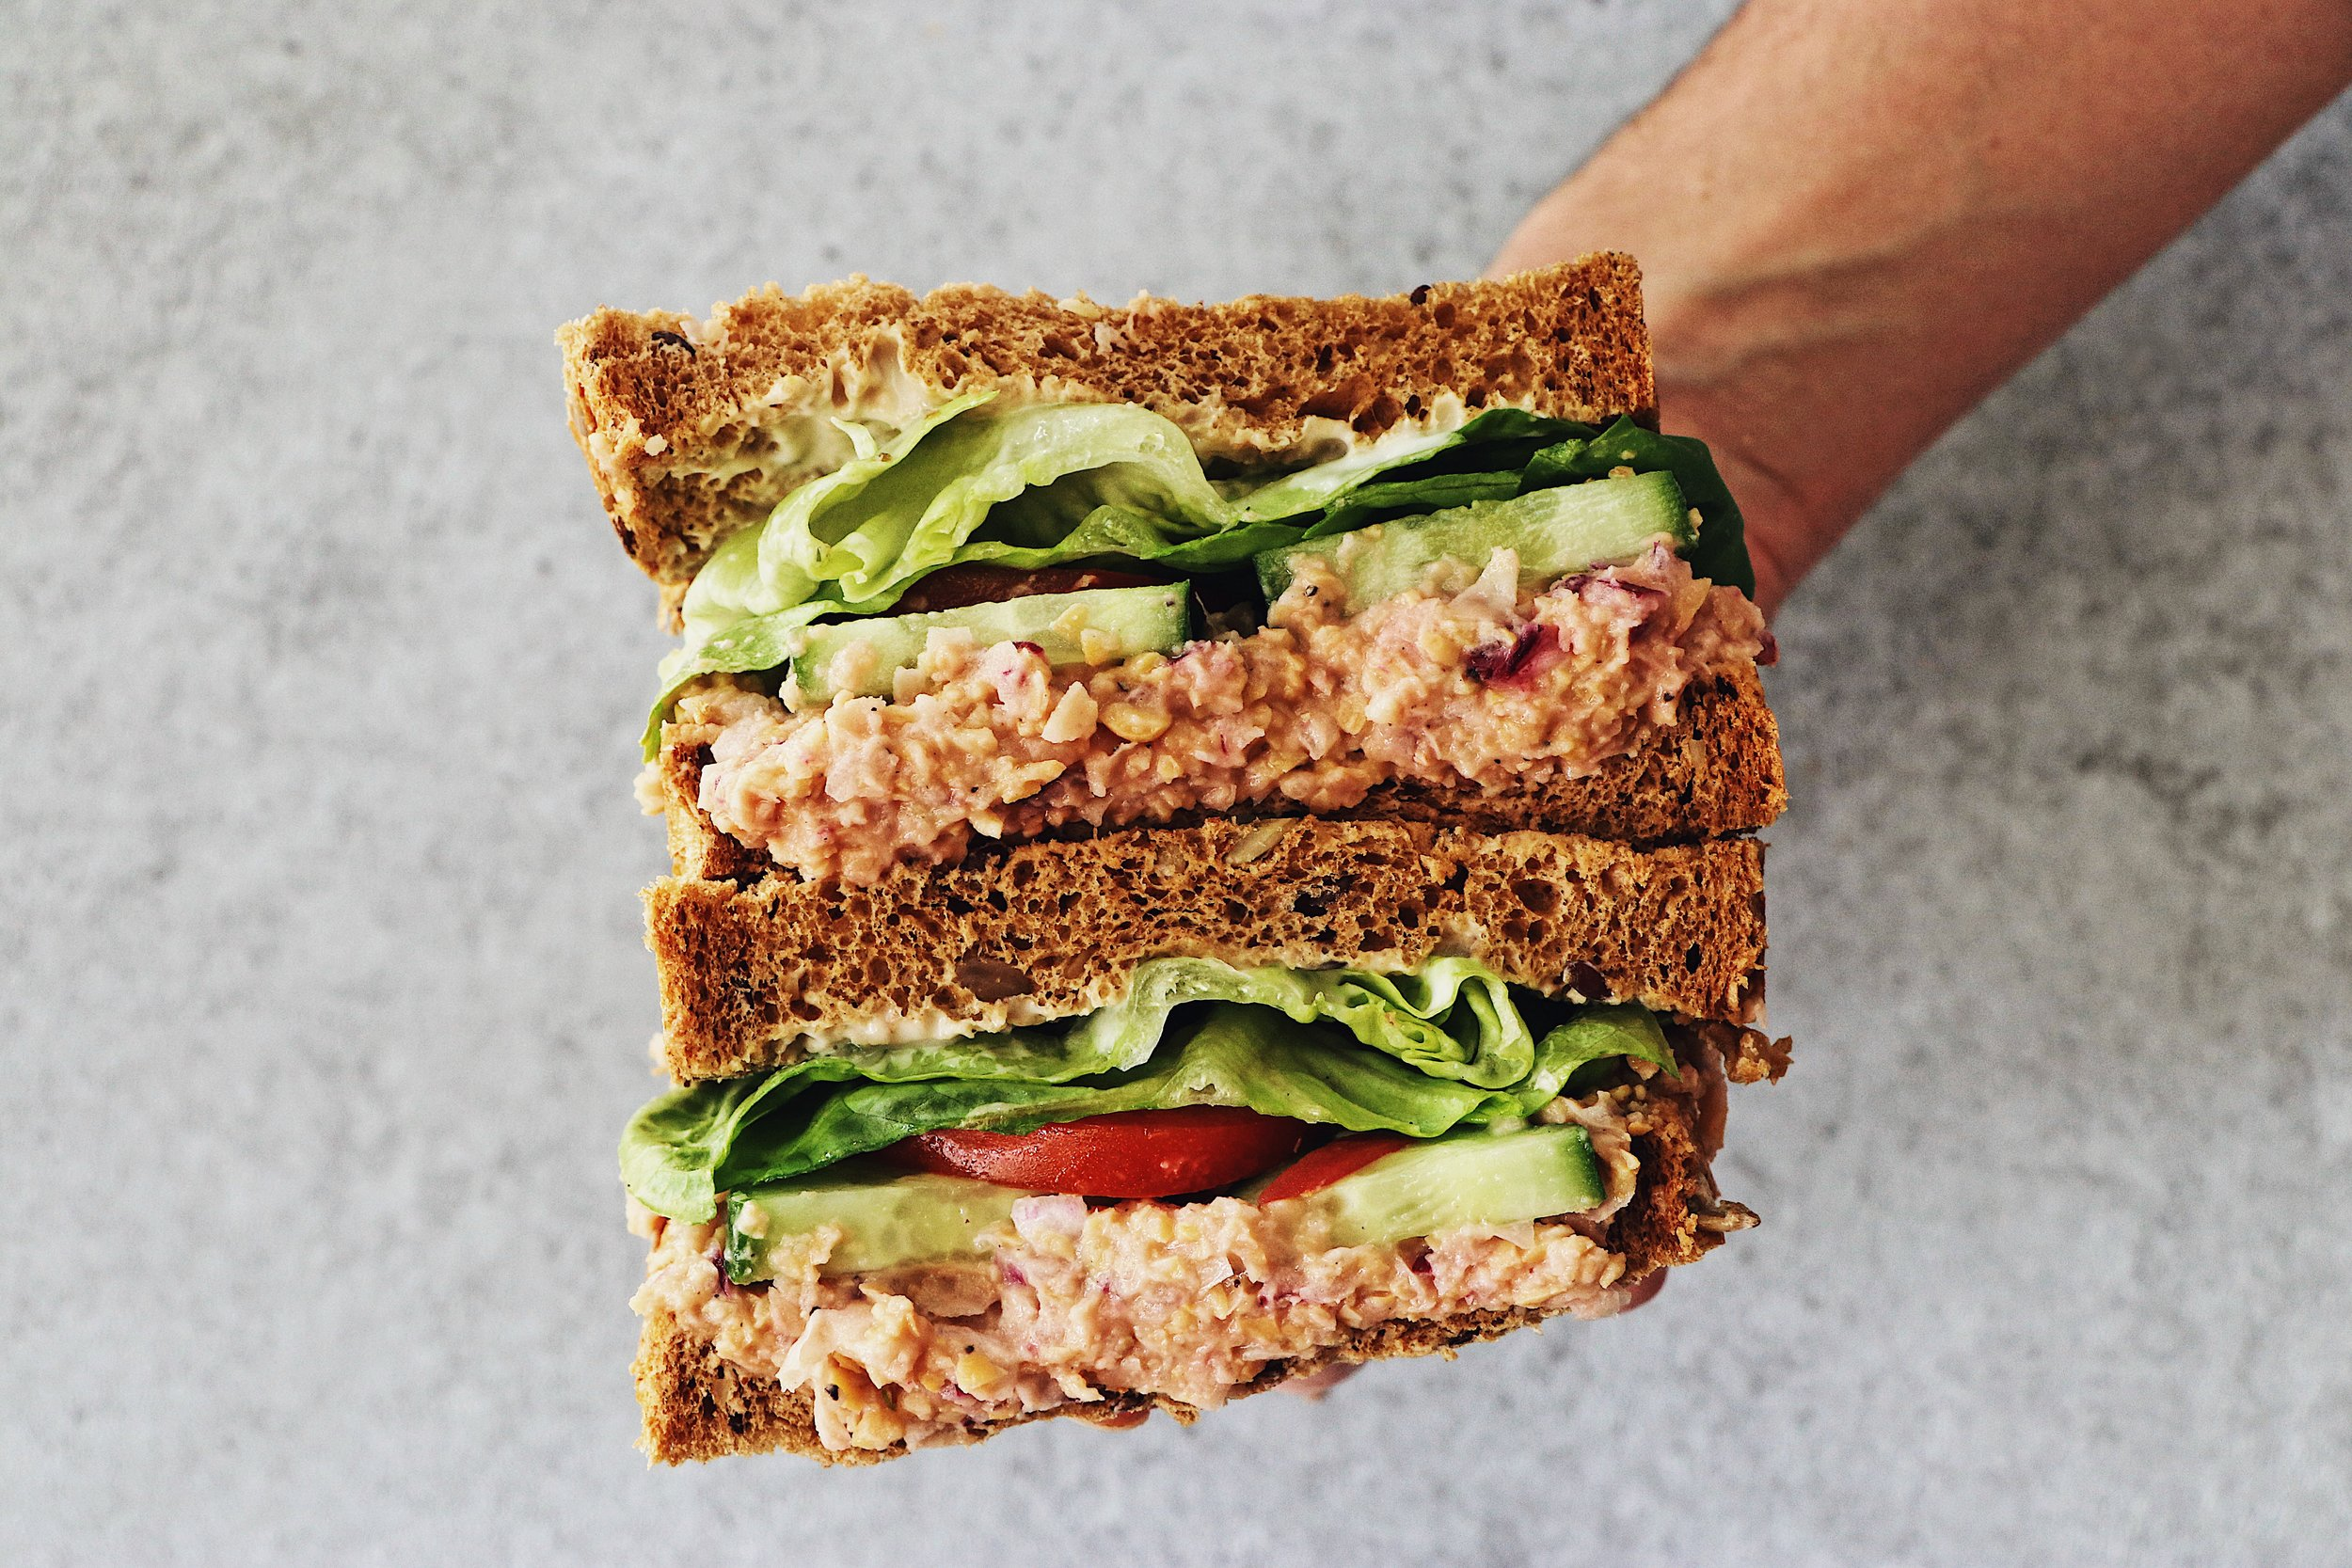 No fish needed for this delicious sandwich filler, and it's just 5 ingredients! - total time5-10 mins  serves 4